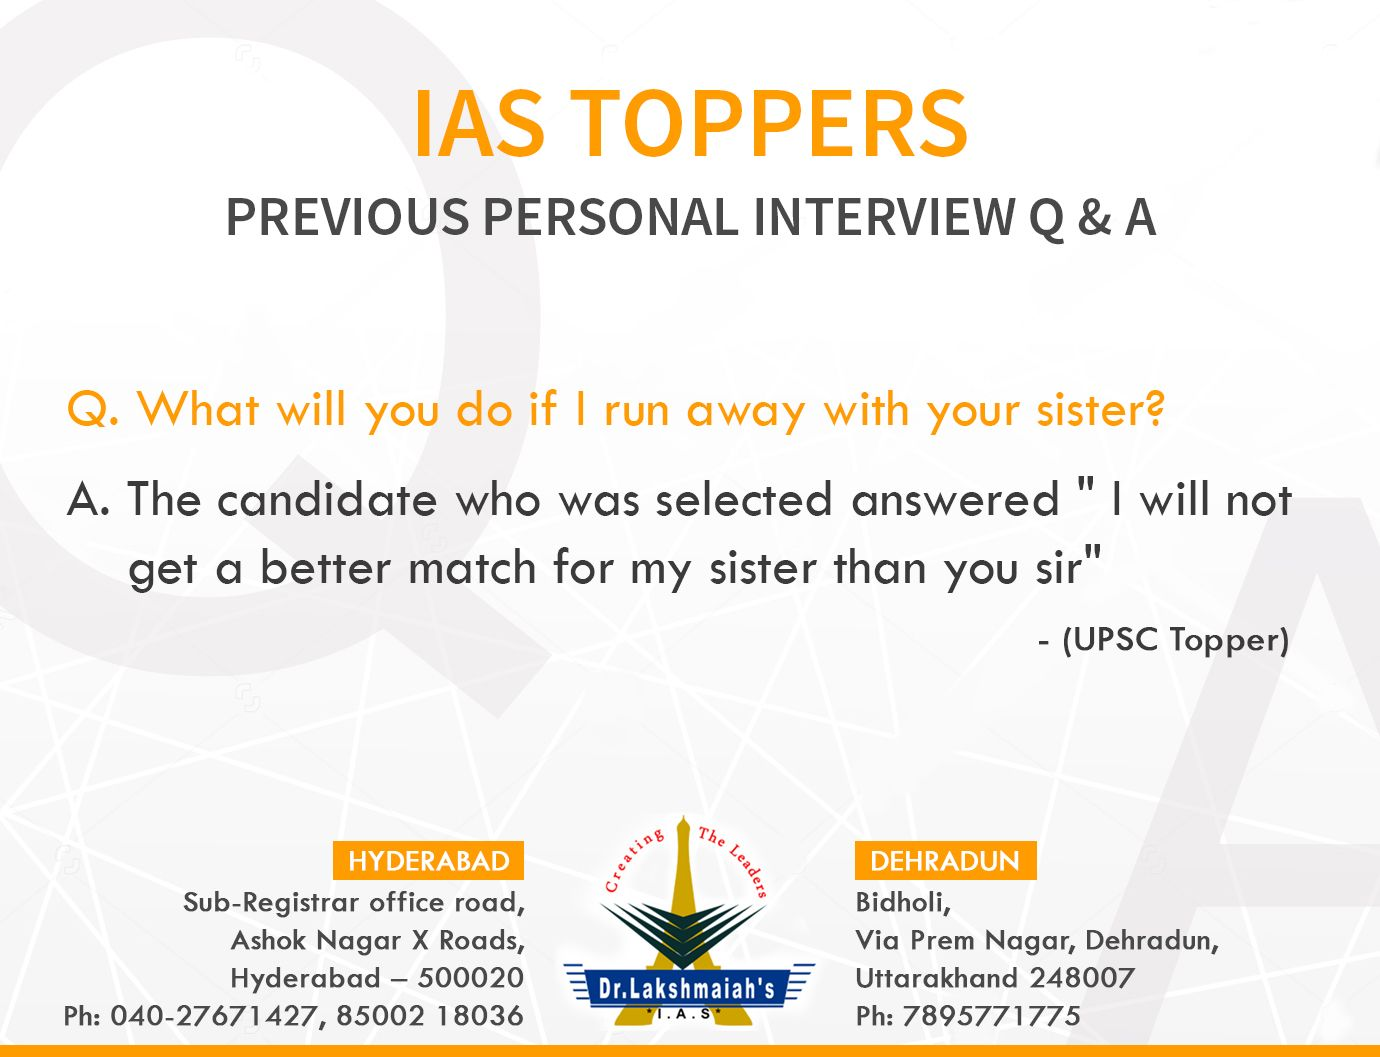 IAS Toppers Previous Personal Interview Q & A. For more